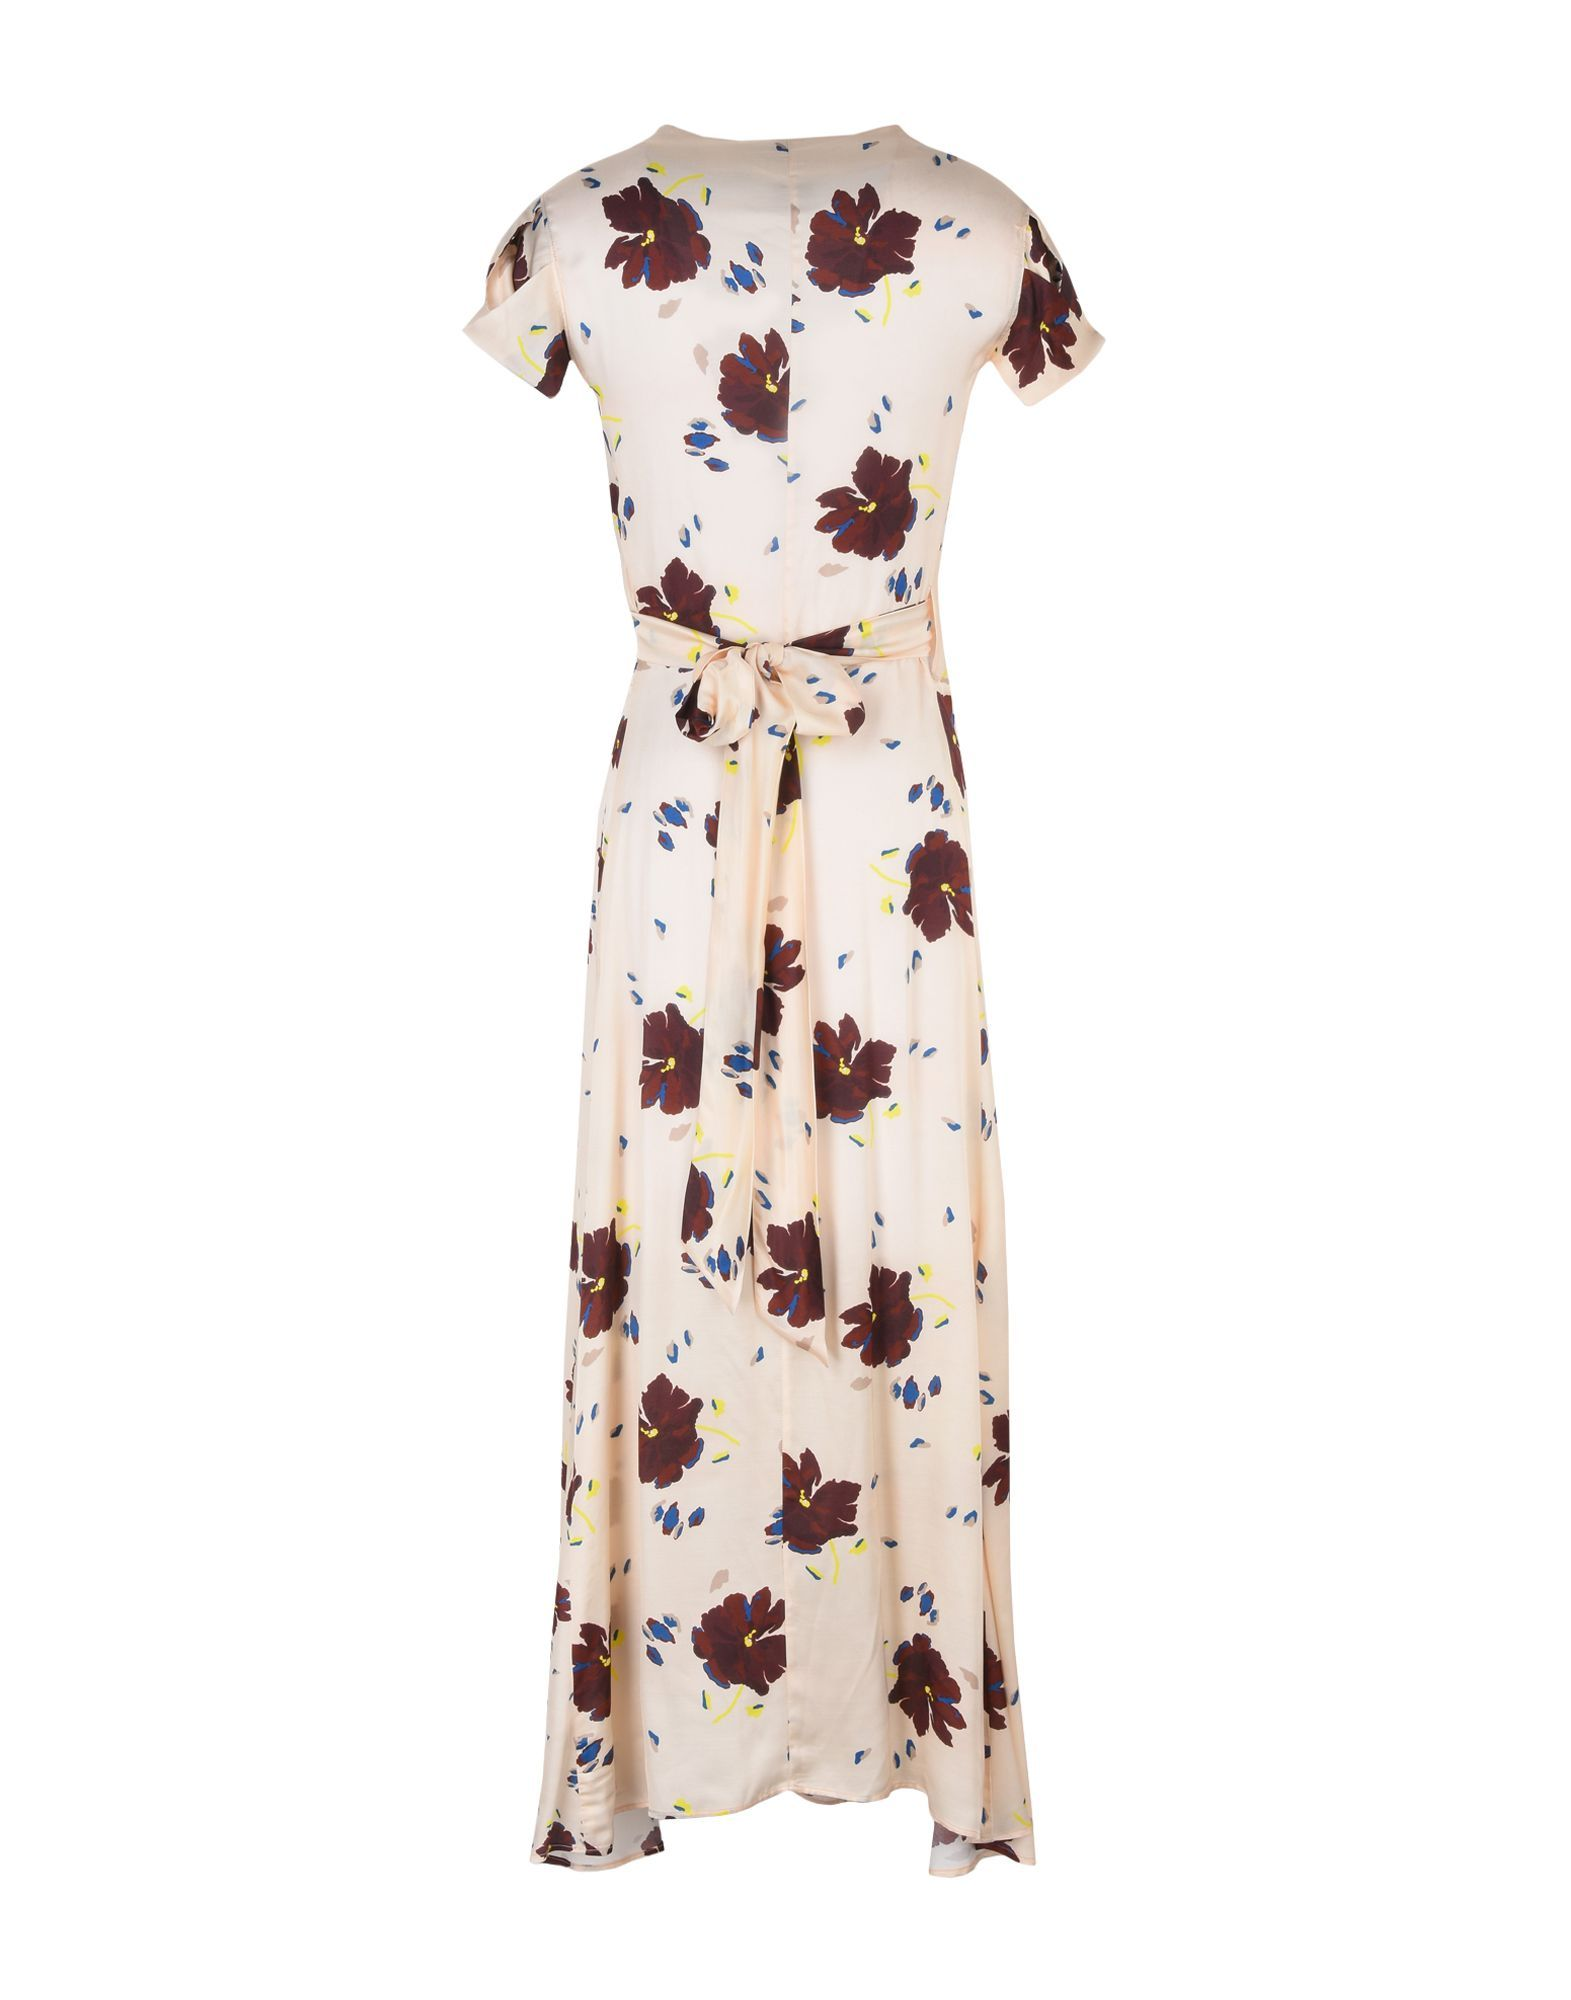 Alysi Beige Print Full Length Dress